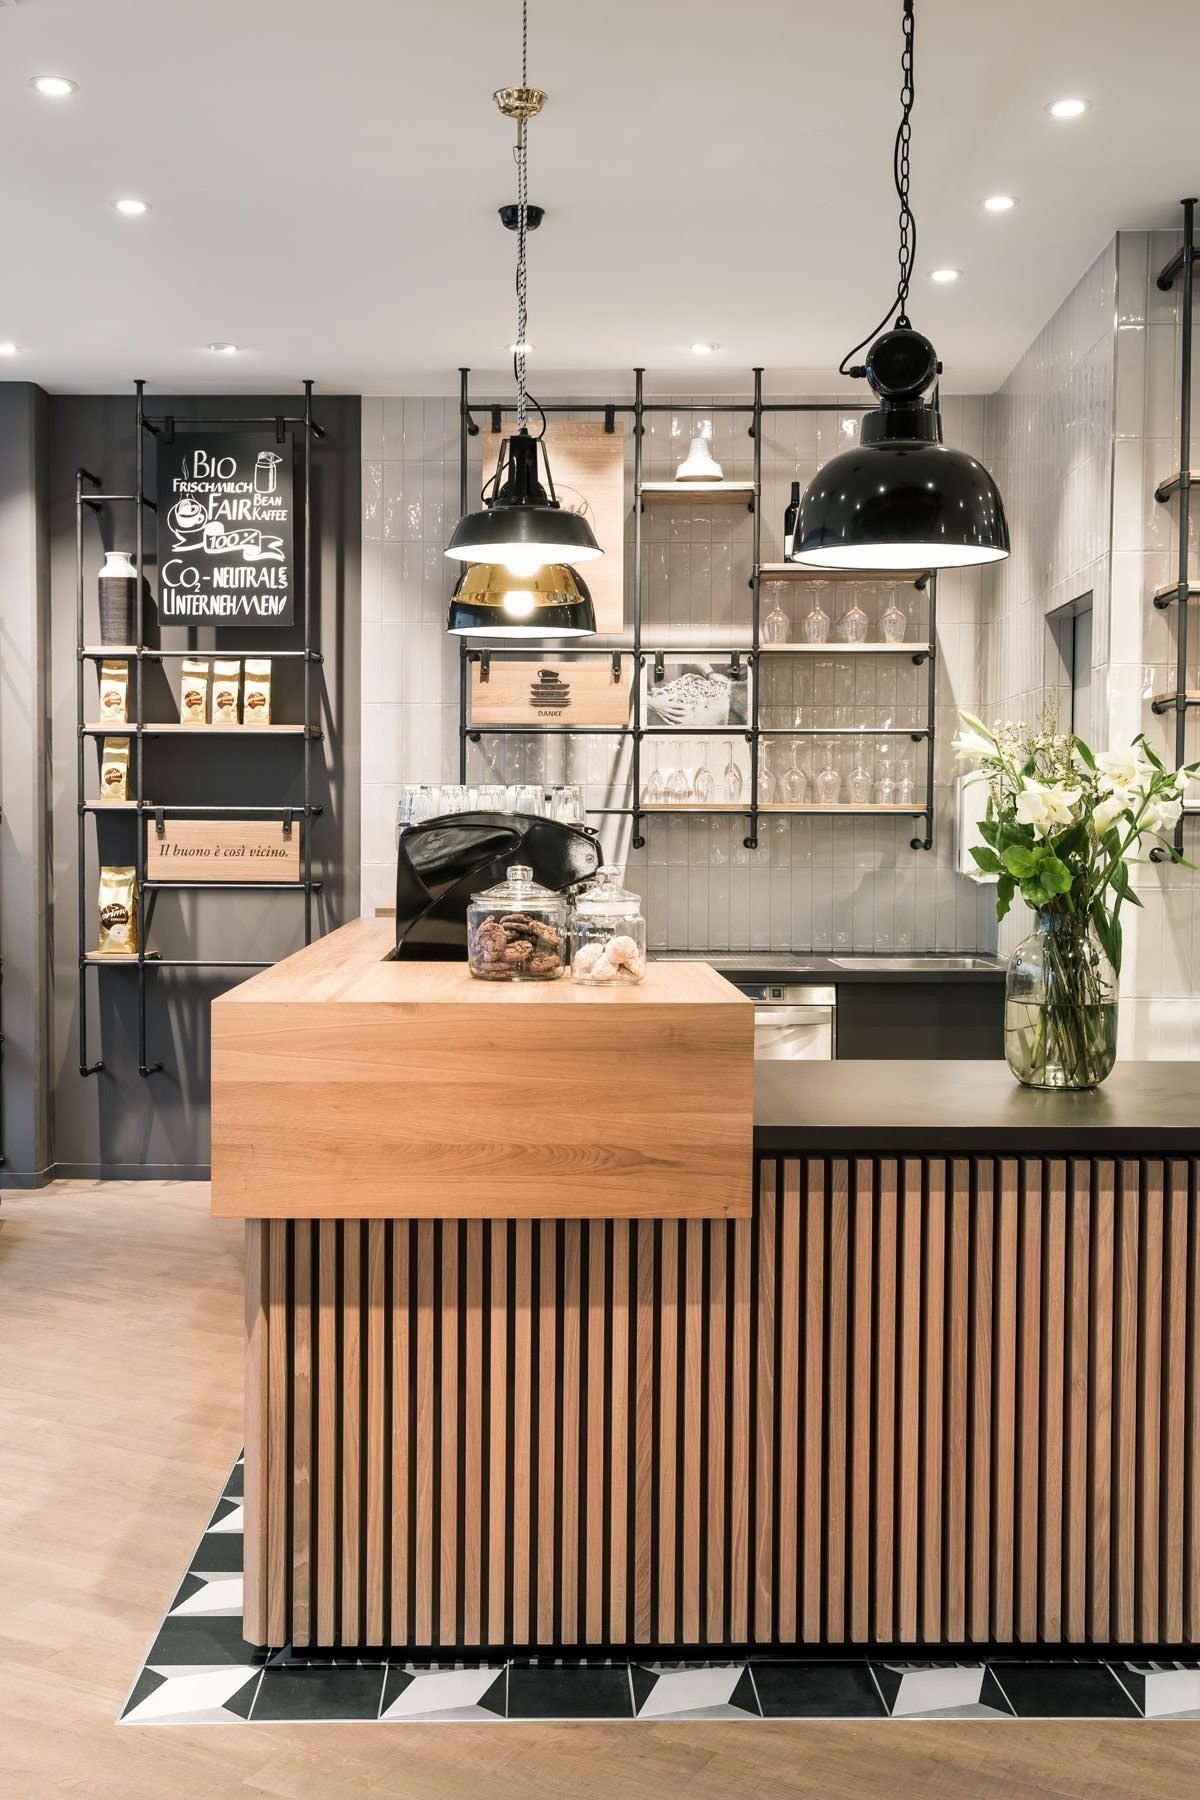 Ounter Architecture Primo Cafe Bar Tubingen By Dia Dittel Architekten Also  Thi Quan Nh Ng Co